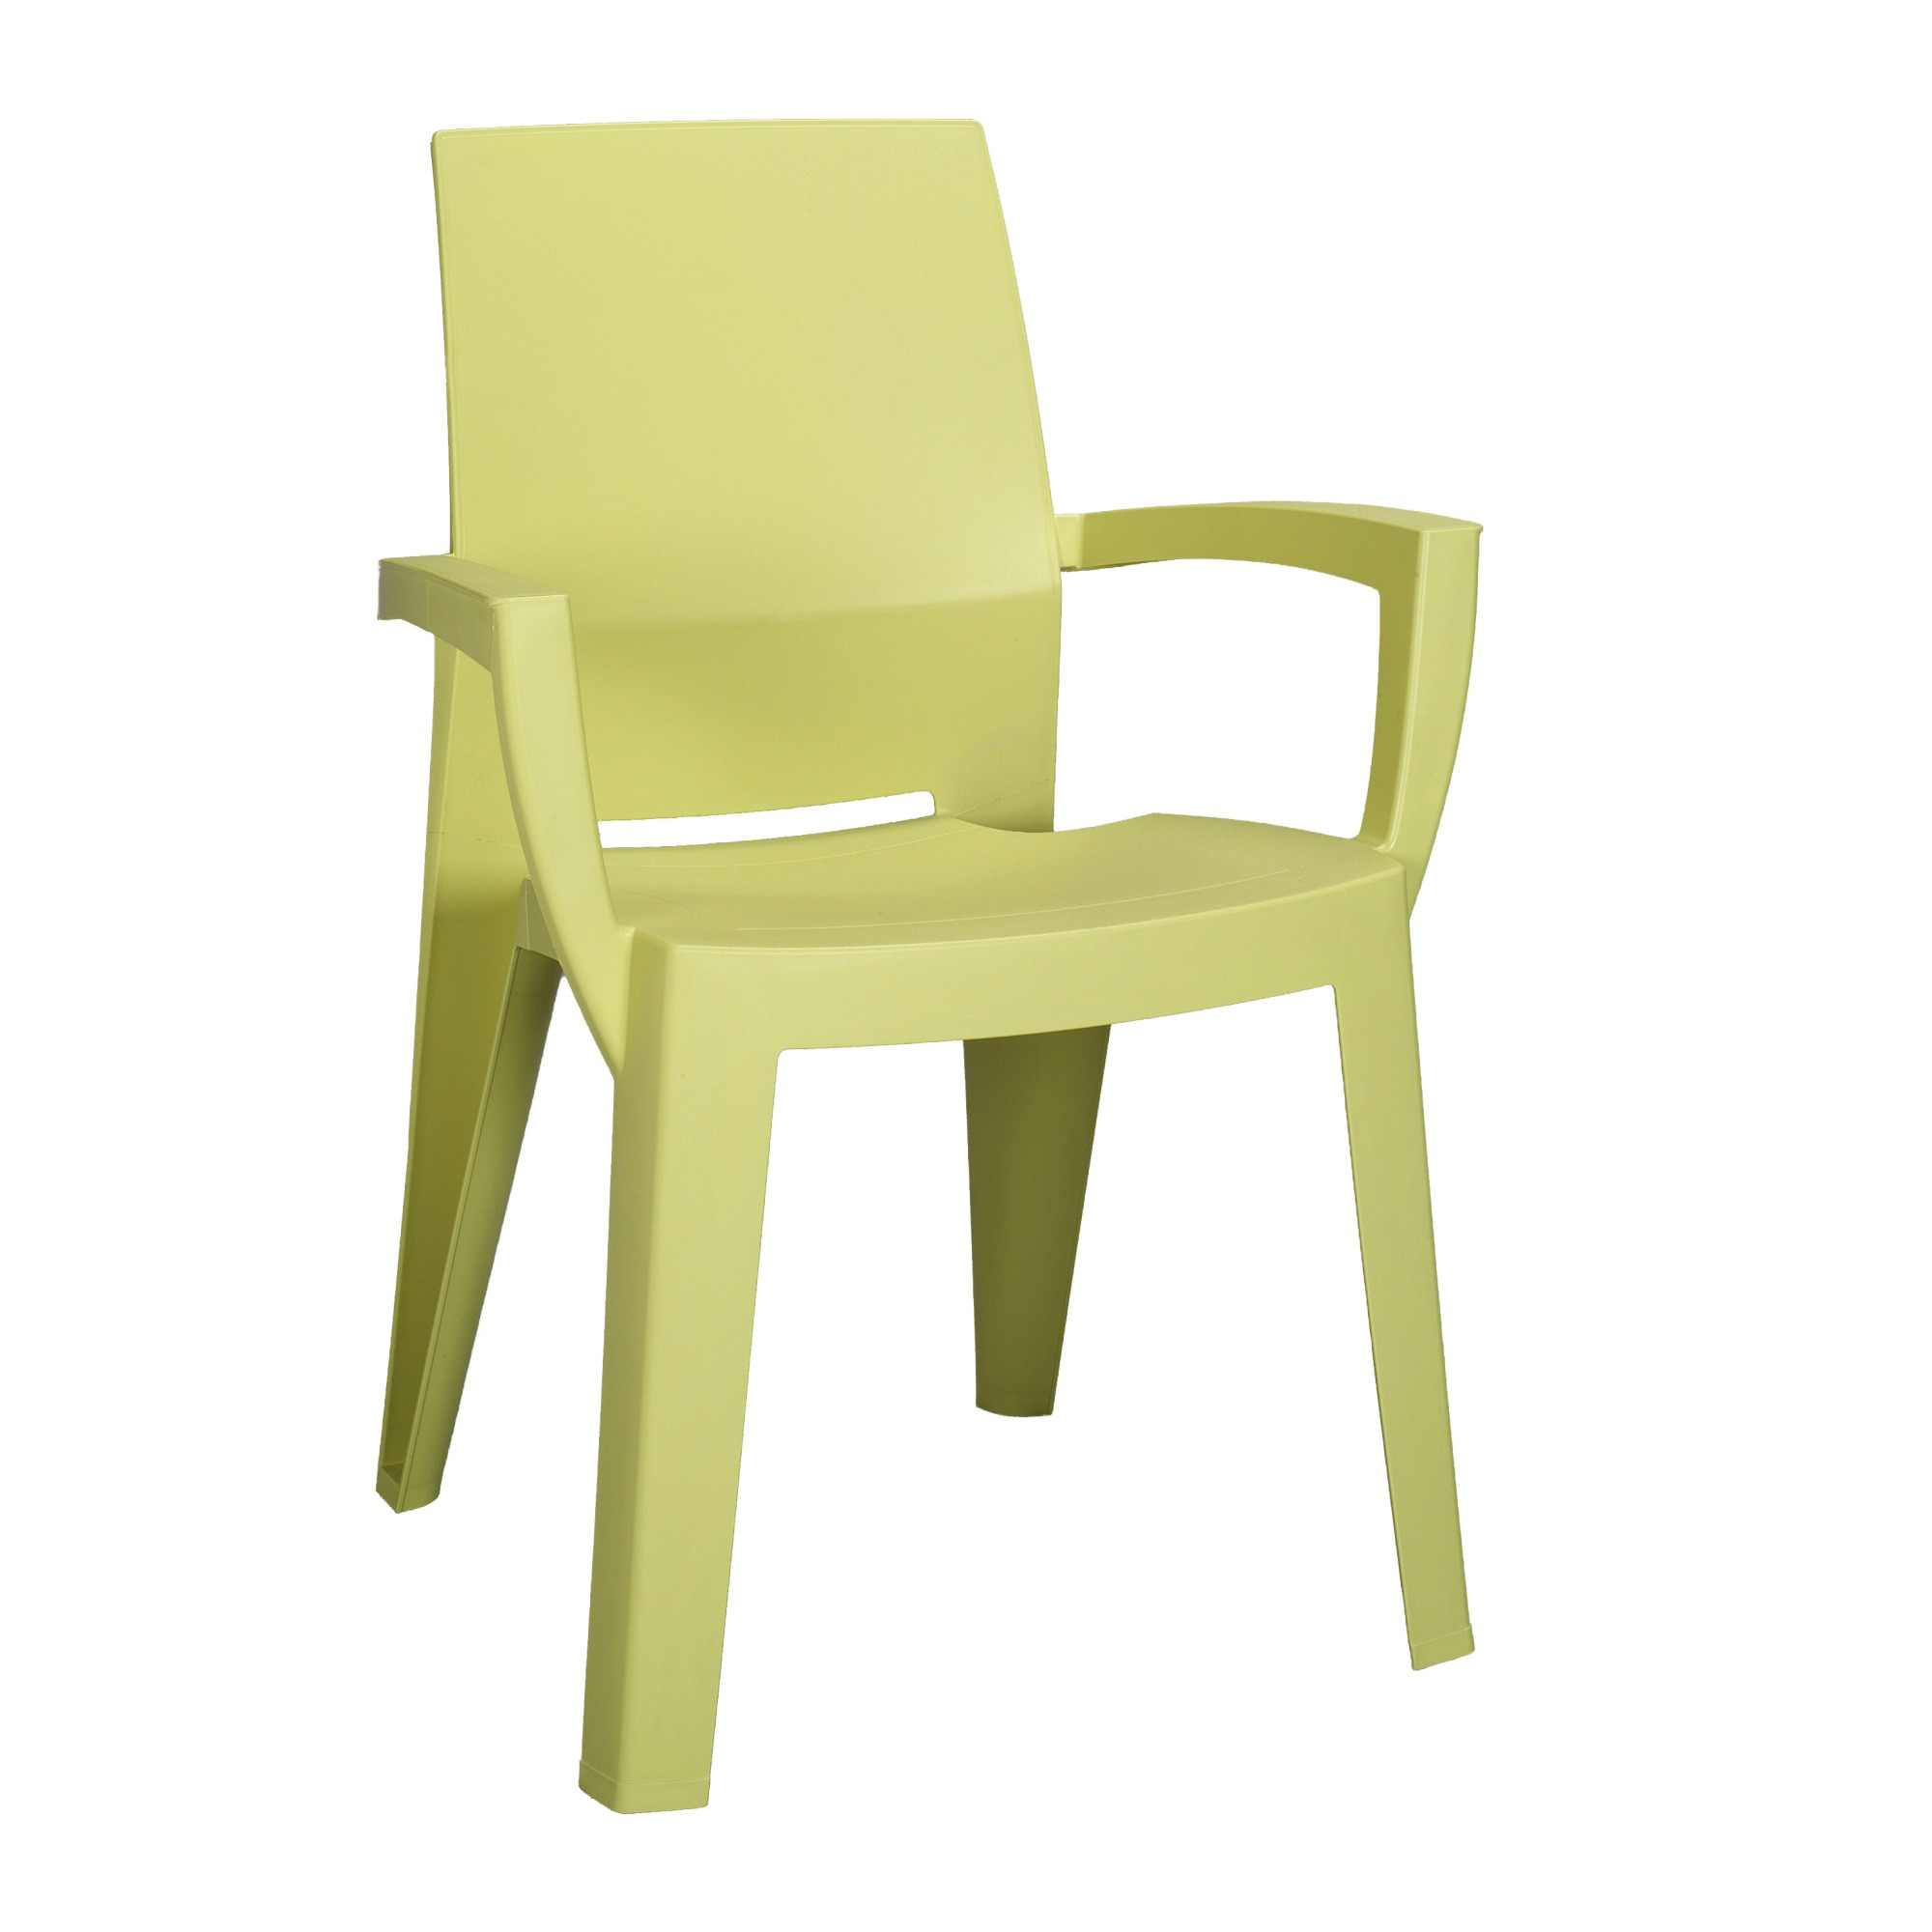 Allibert Meubles De Jardin Chaise Lago Allibert Lime Chaises And Fauteuils De Jardin